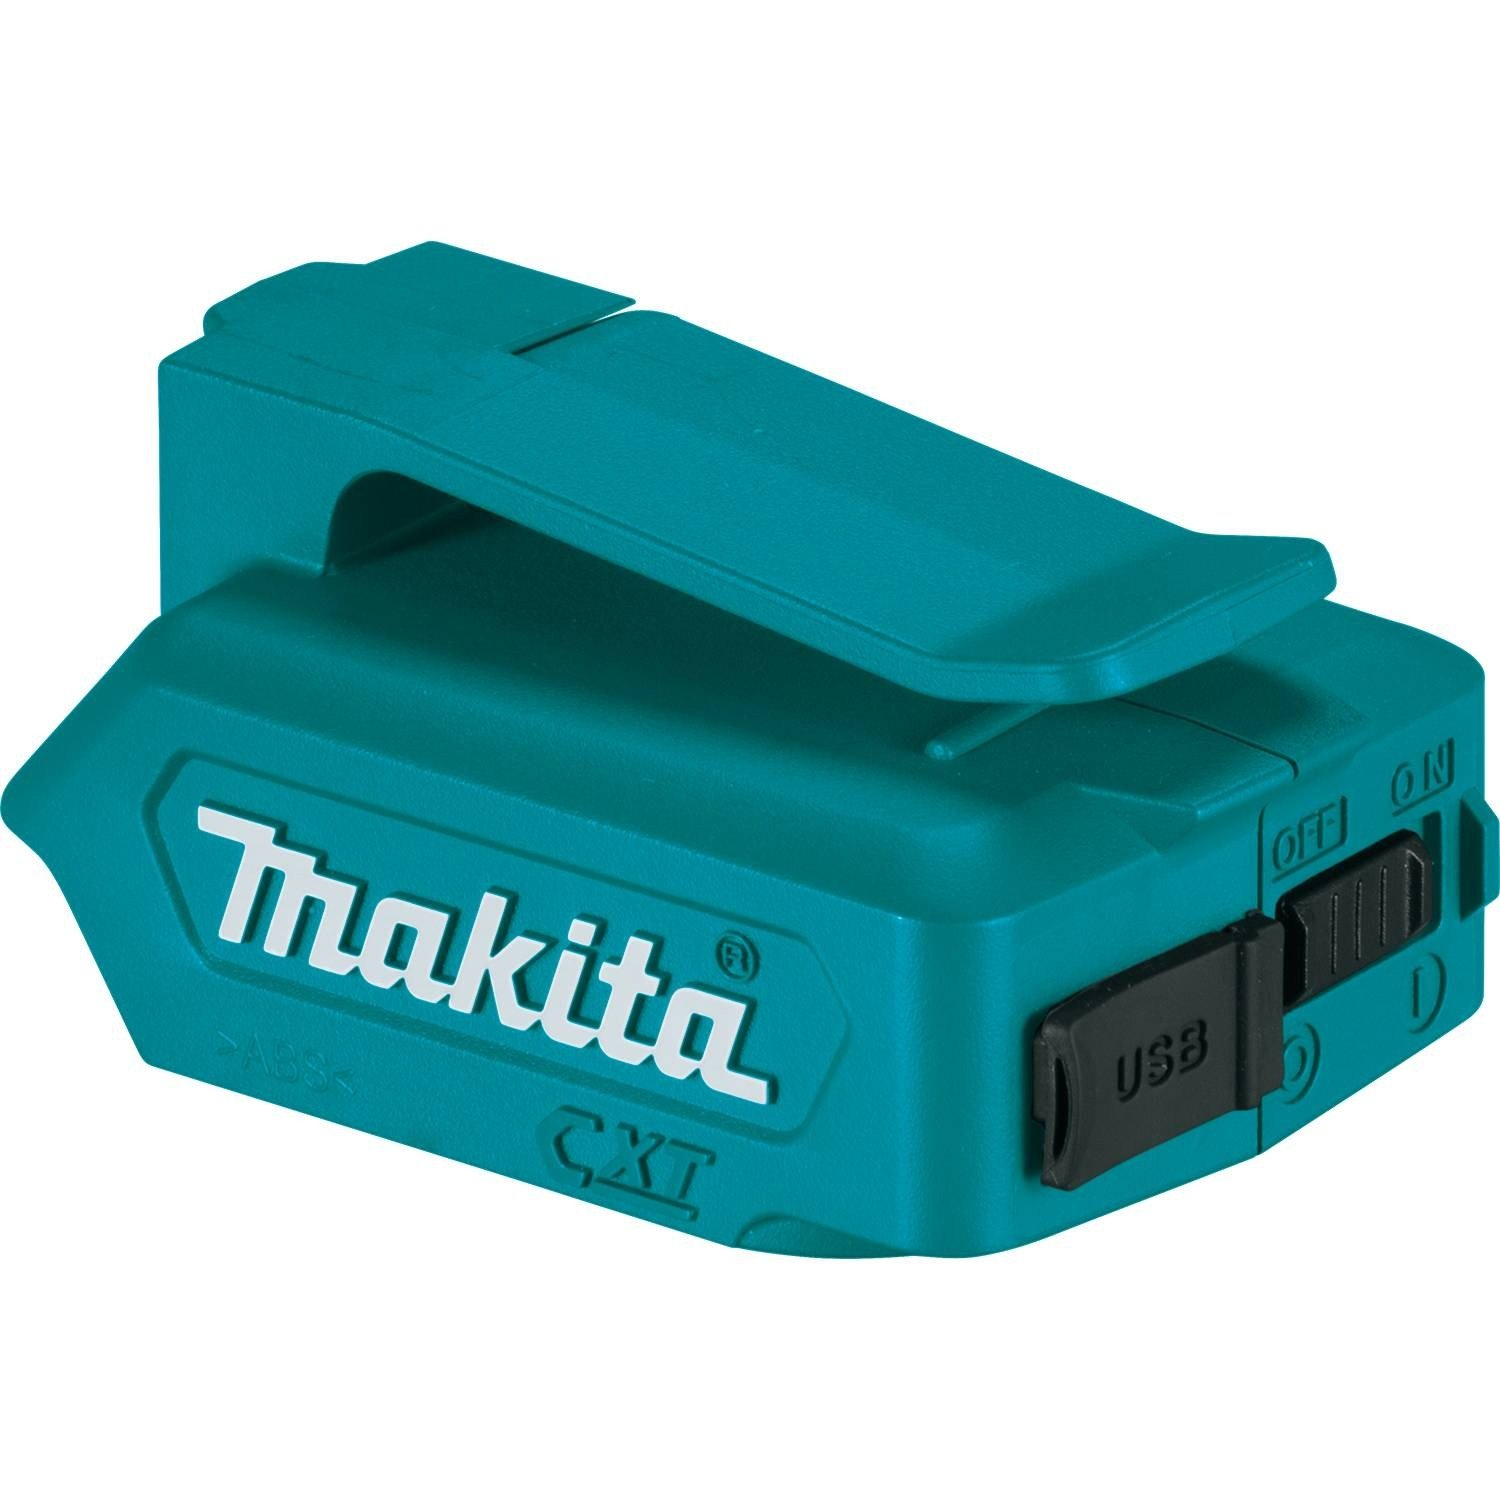 Makita Adp05 18v Lxt Lithium Ion Cordless Power Source Related Posts To Quot5vdc 12vdc Lt1070 Boost Converterquot Adp06 12v Cxt